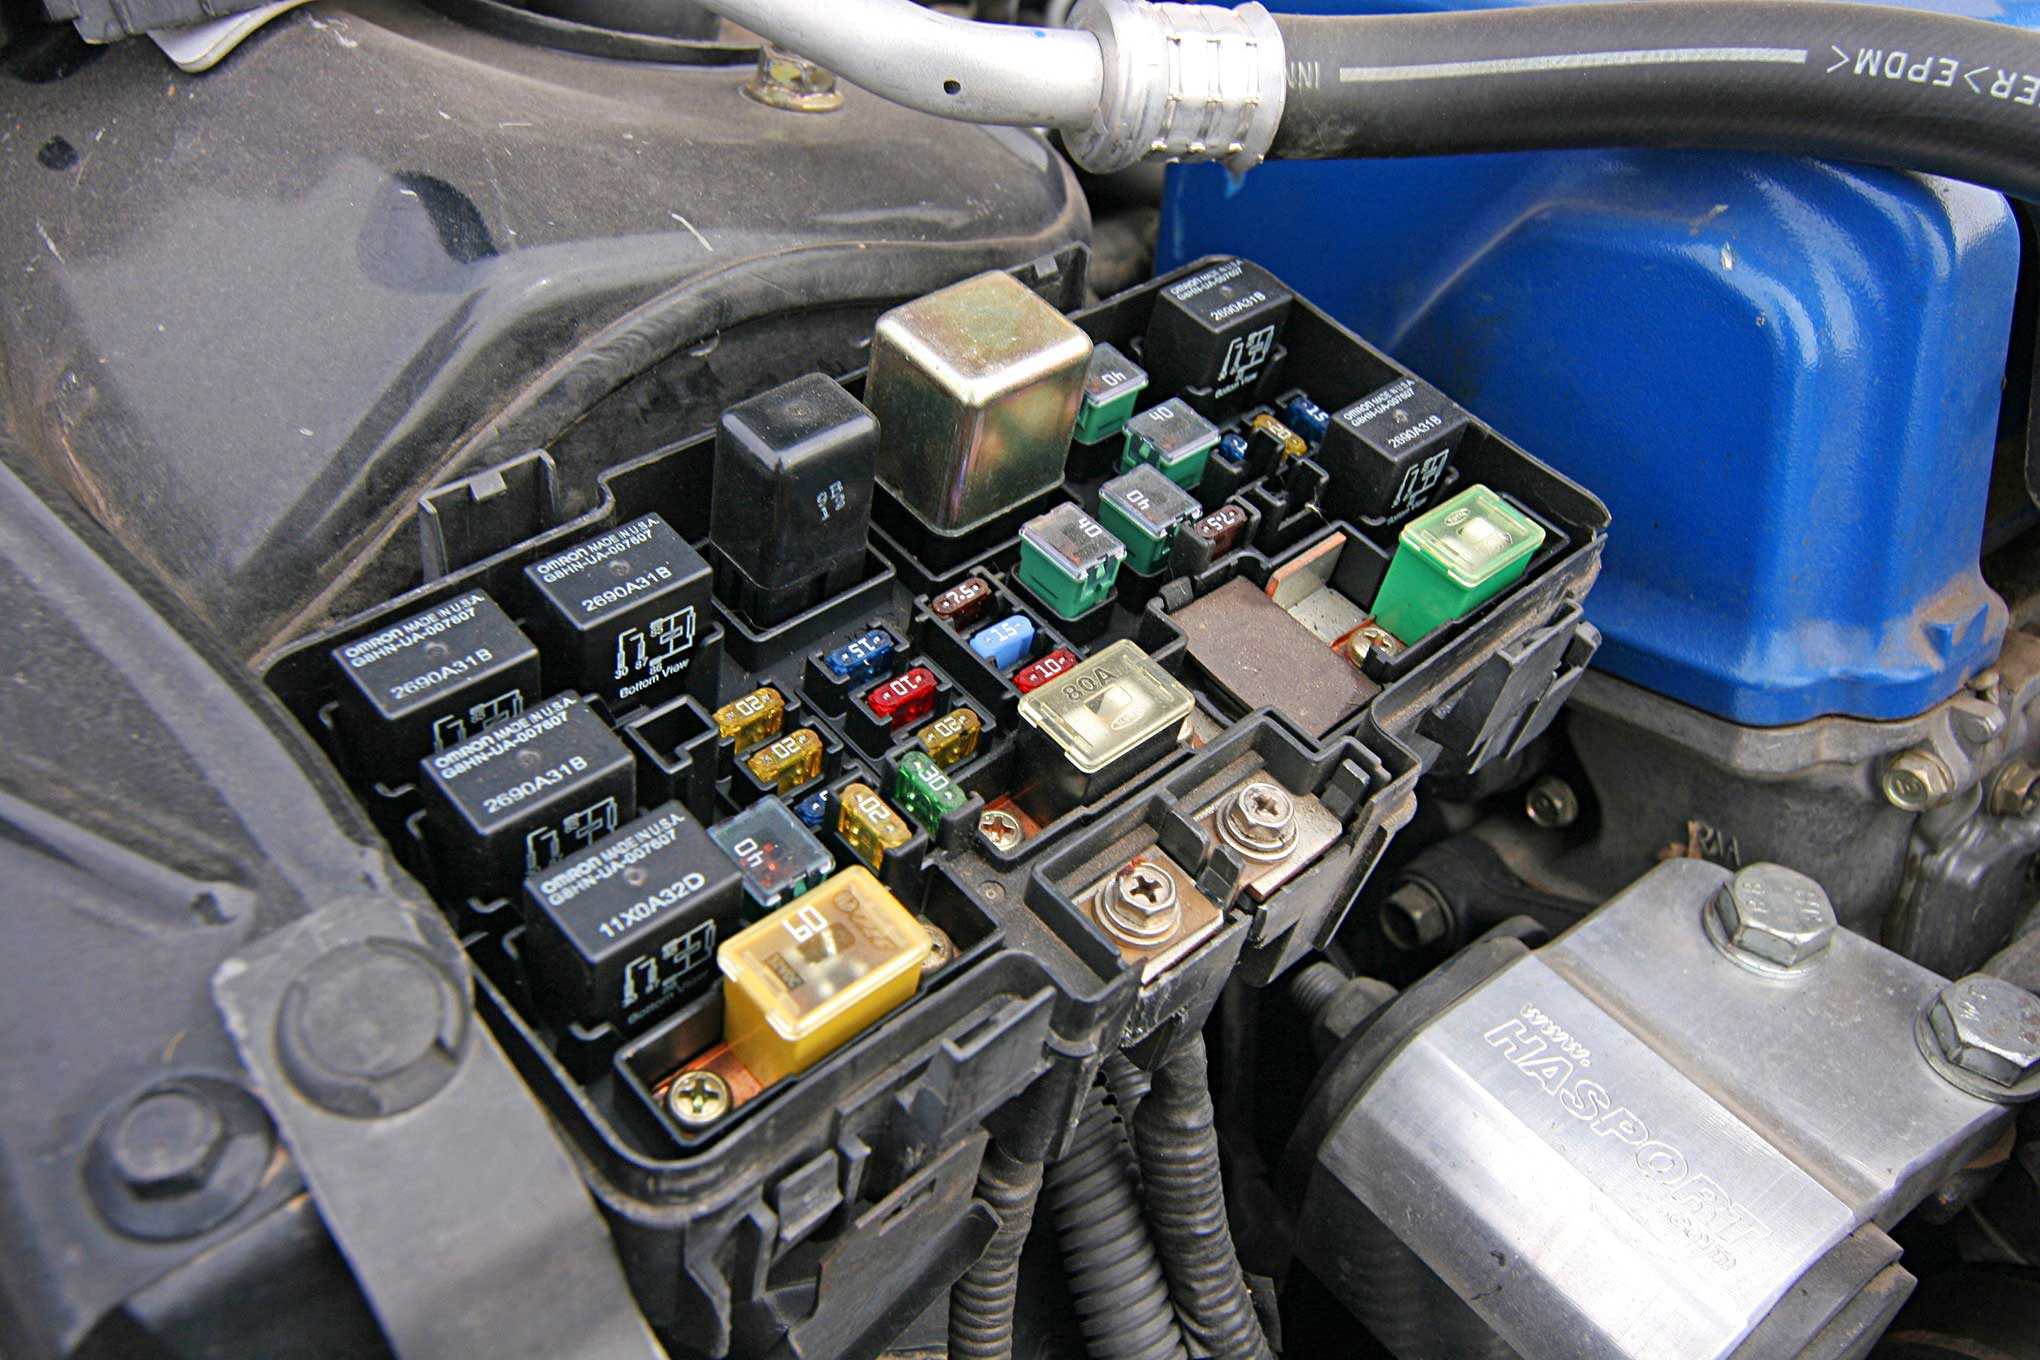 medium resolution of honda s2000 fuse box relocation kit